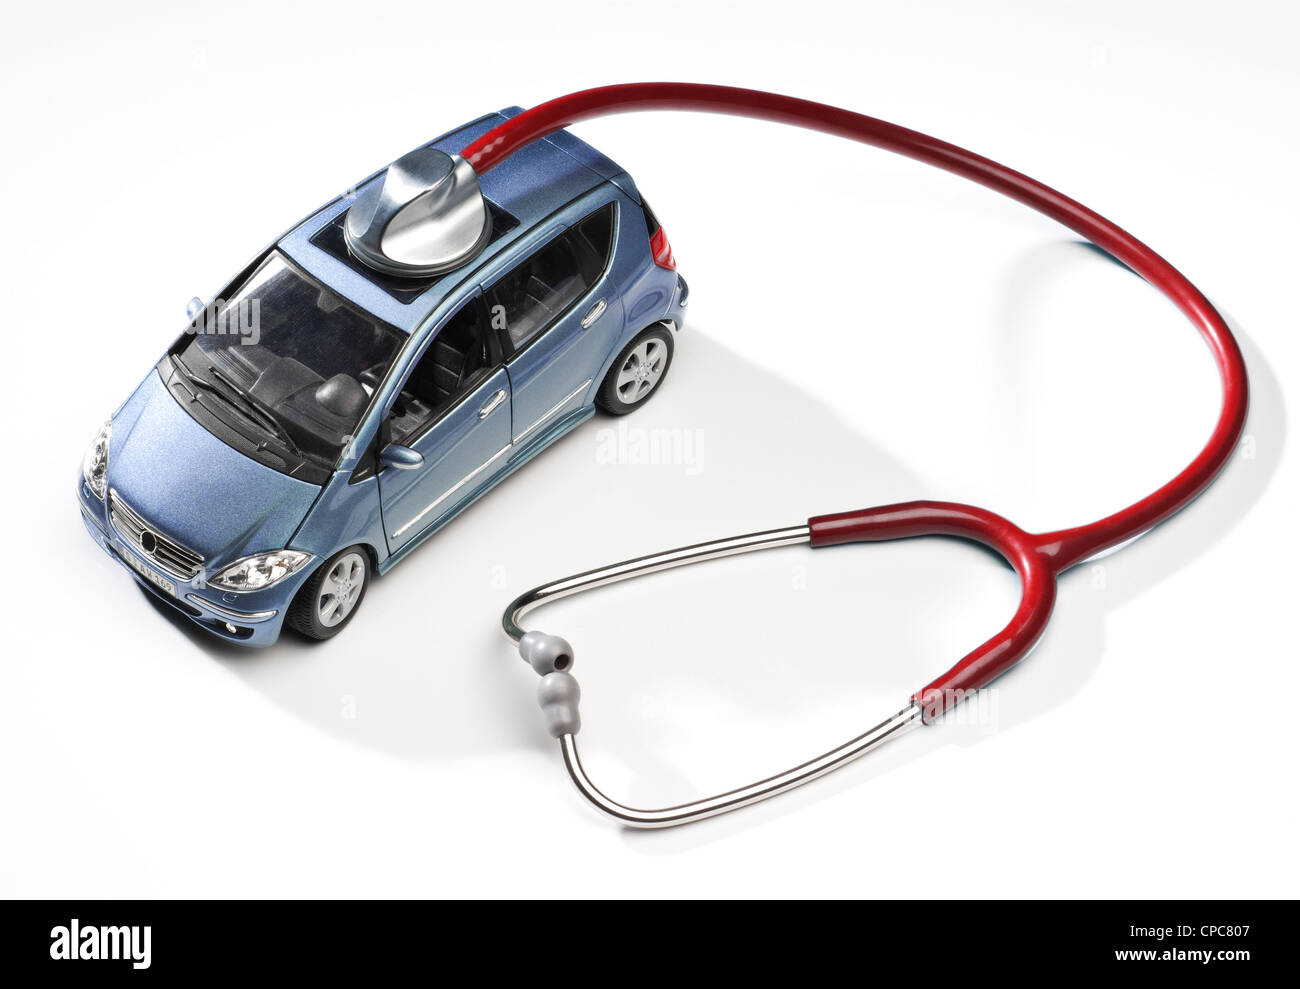 Model Car with stethoscope as a symbol for automotive service. - Stock Image